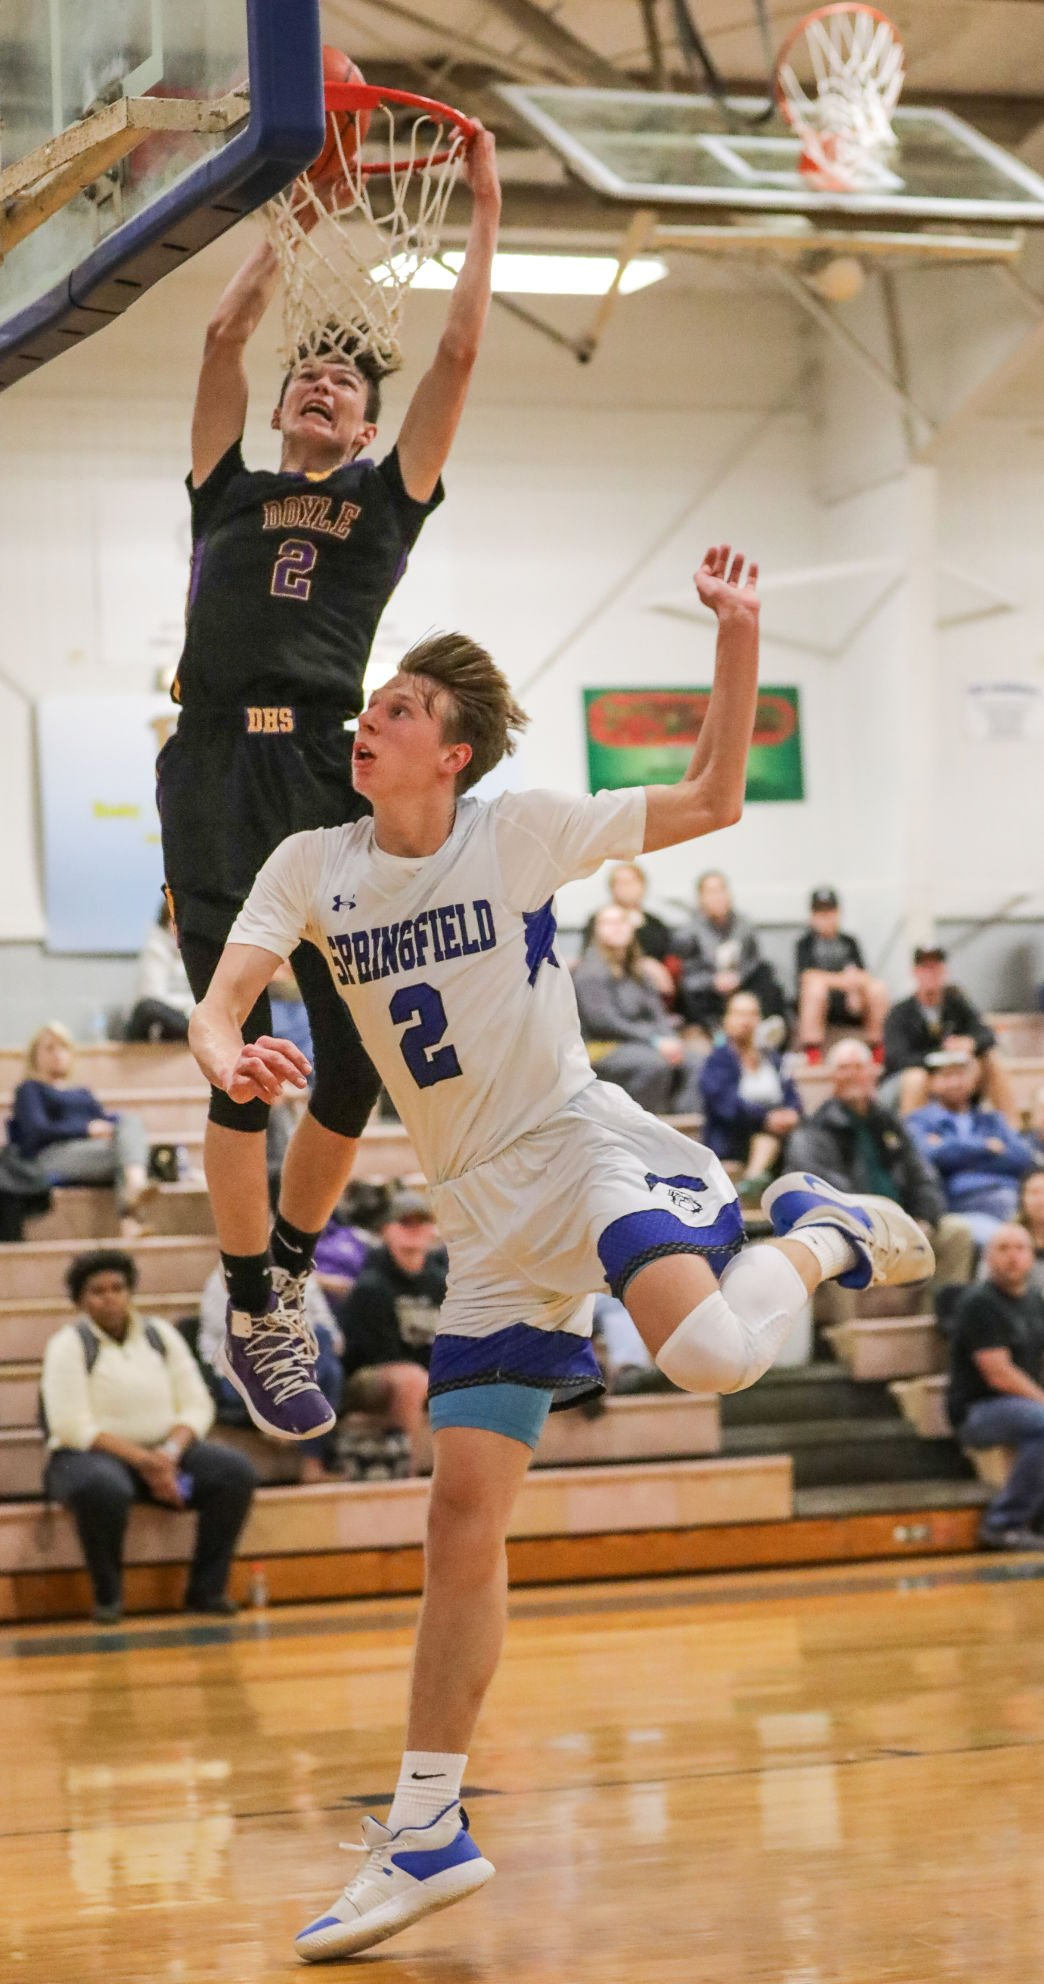 Doyle at Springsfield basketball Andrew Yuratich Bryce Johnson